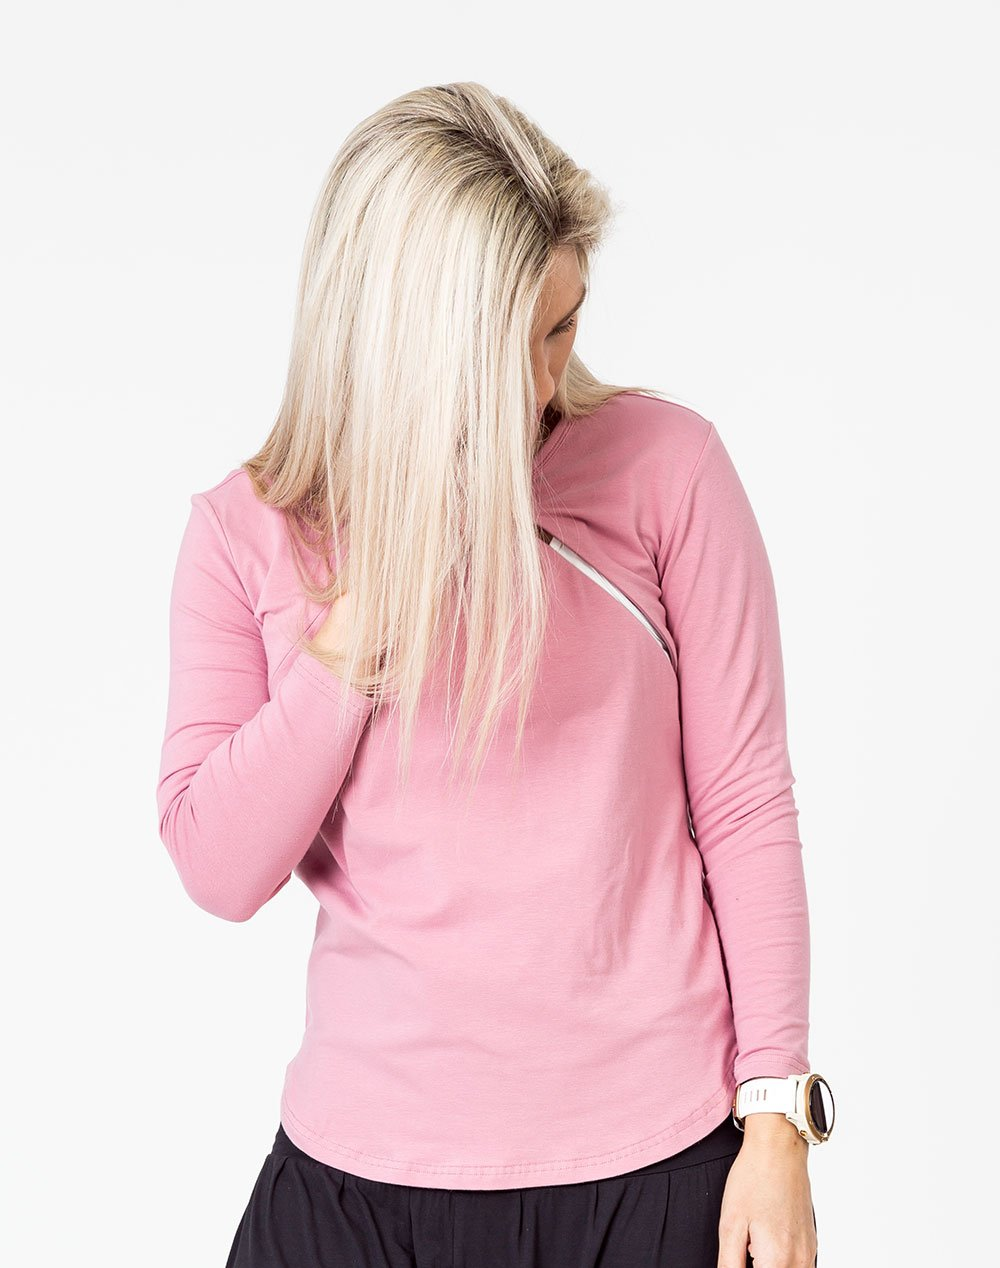 front view of a mom wearing a pink maternity top with long sleeves and invisible zips